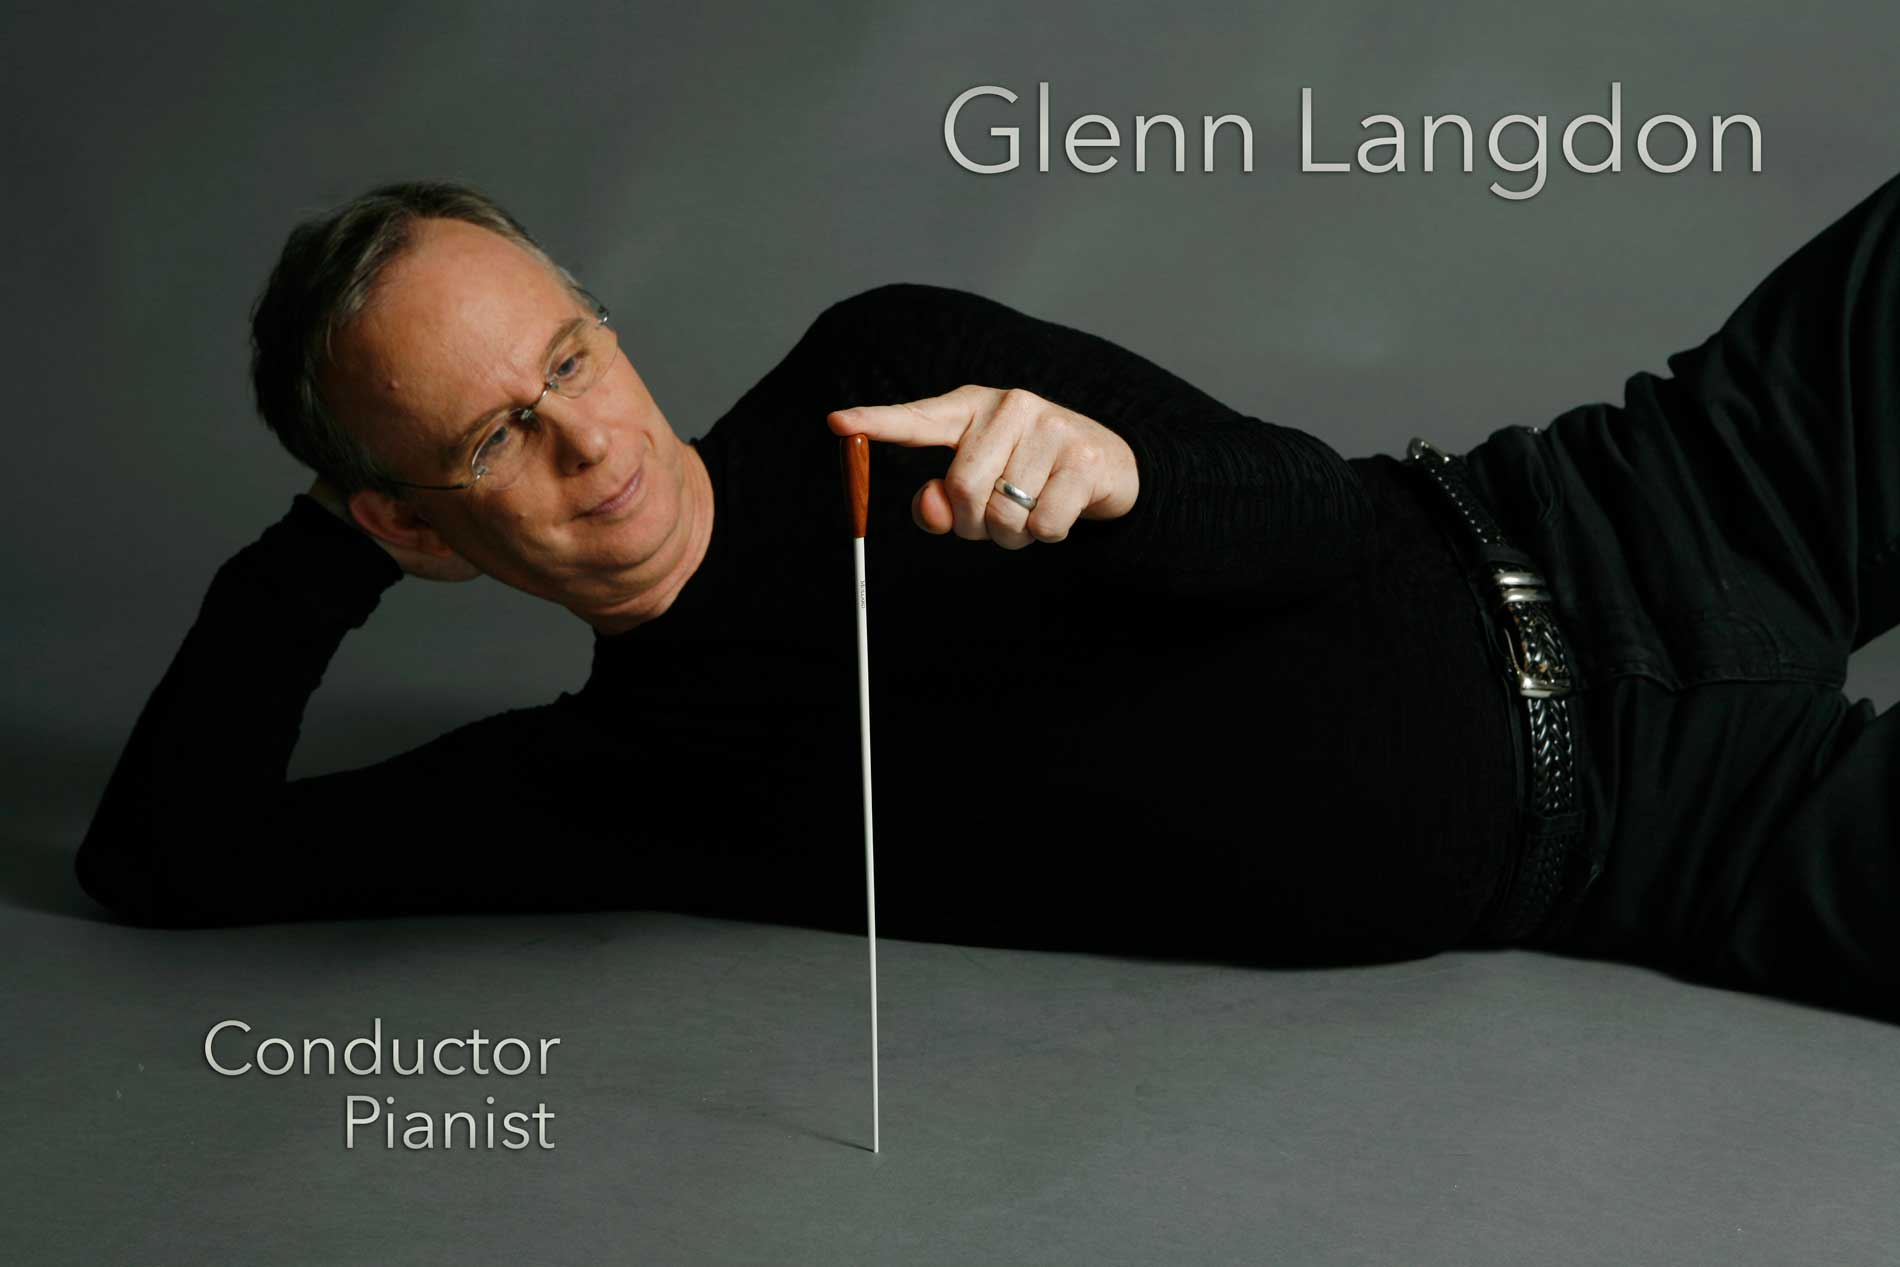 Glenn Langdon with baton